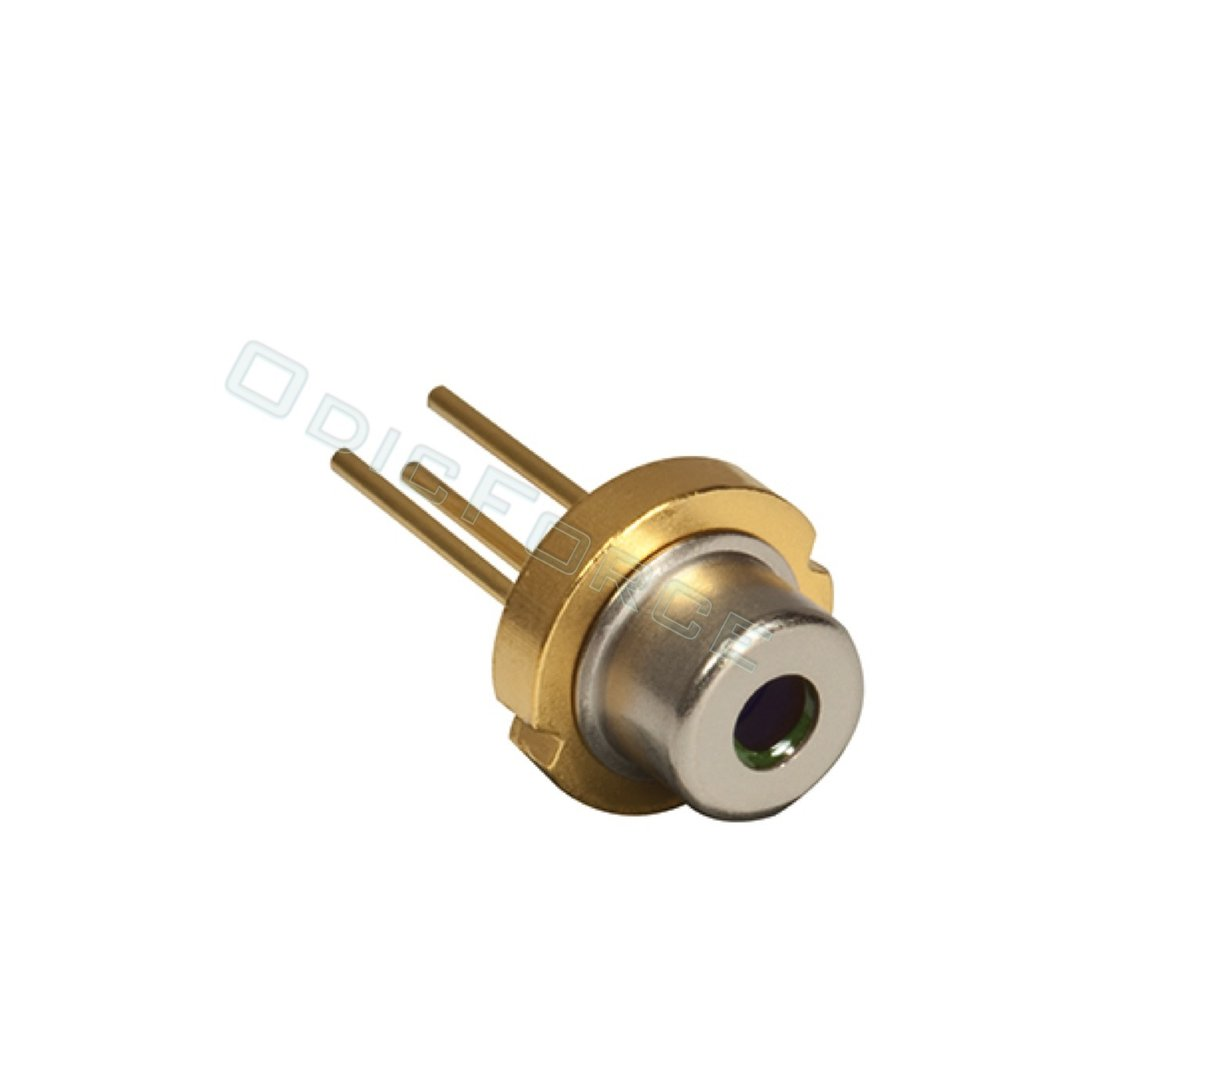 830nm 220mW  Infrared Laser Diode (TO-56 5.6mm) - Nightvision